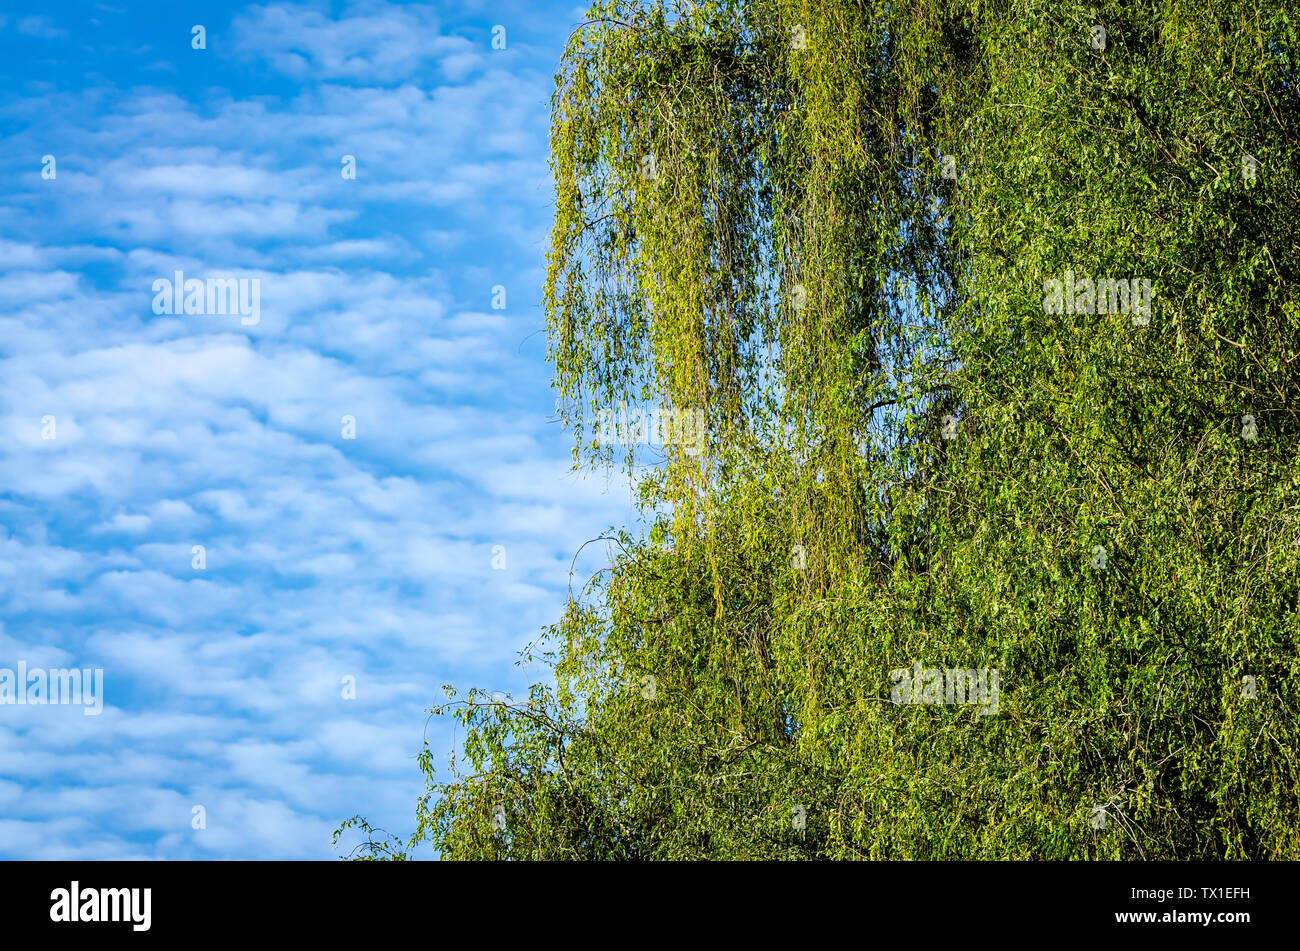 Green leaves against the sky with white and fluffy clouds - Stock Image